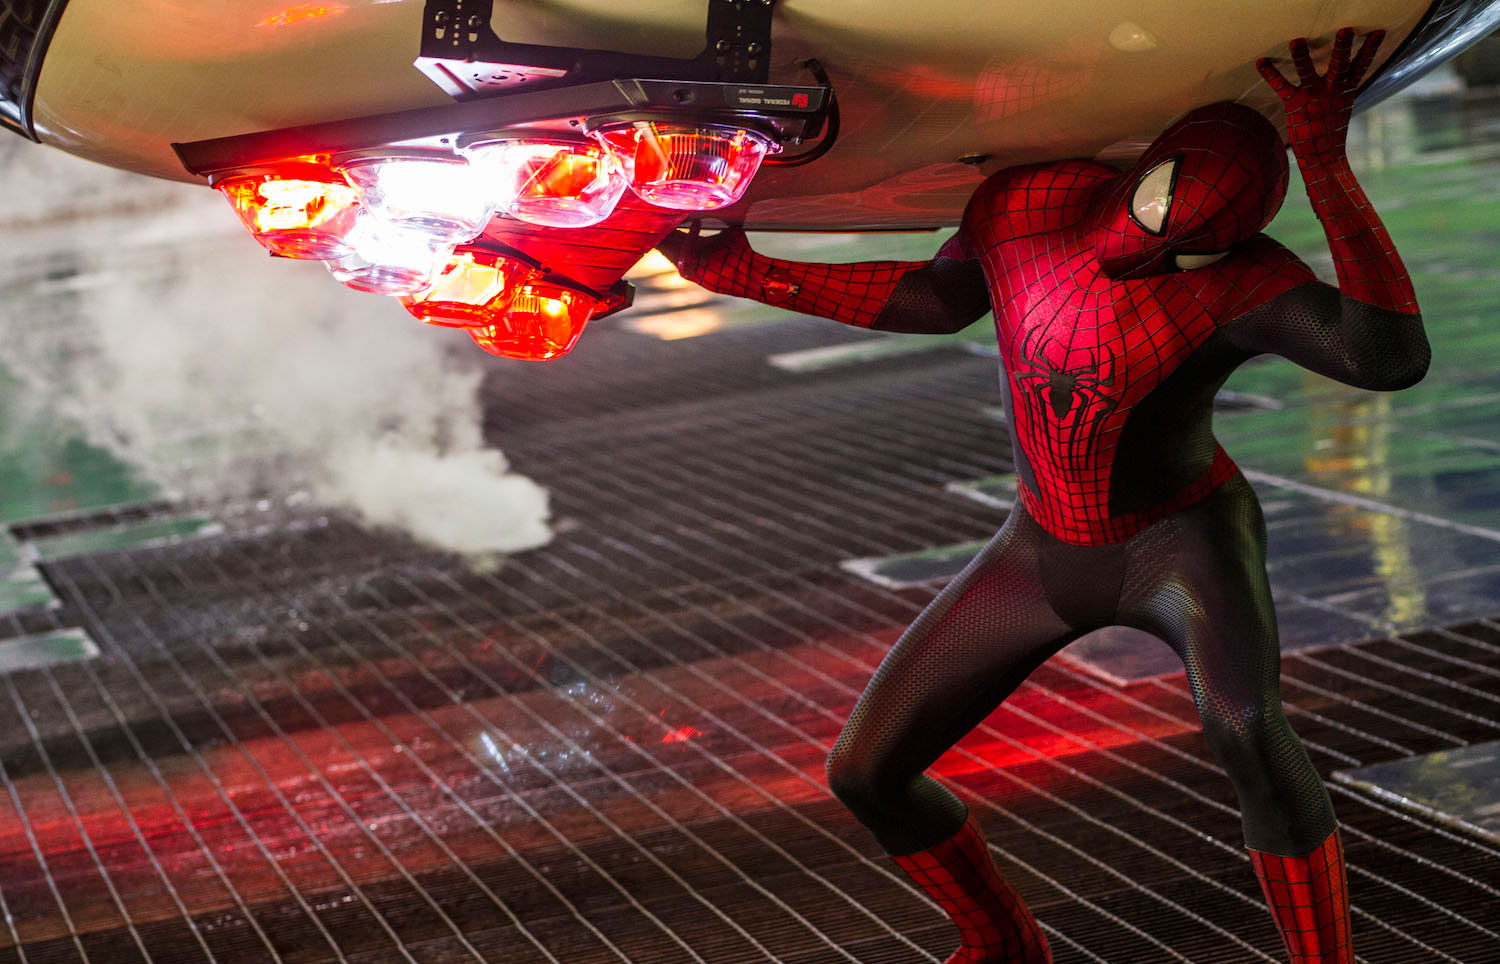 Amazing Spiderman Wallpaper Quotes The Amazing Spider Man 2 Wallpapers Hd Amp Facebook Cover